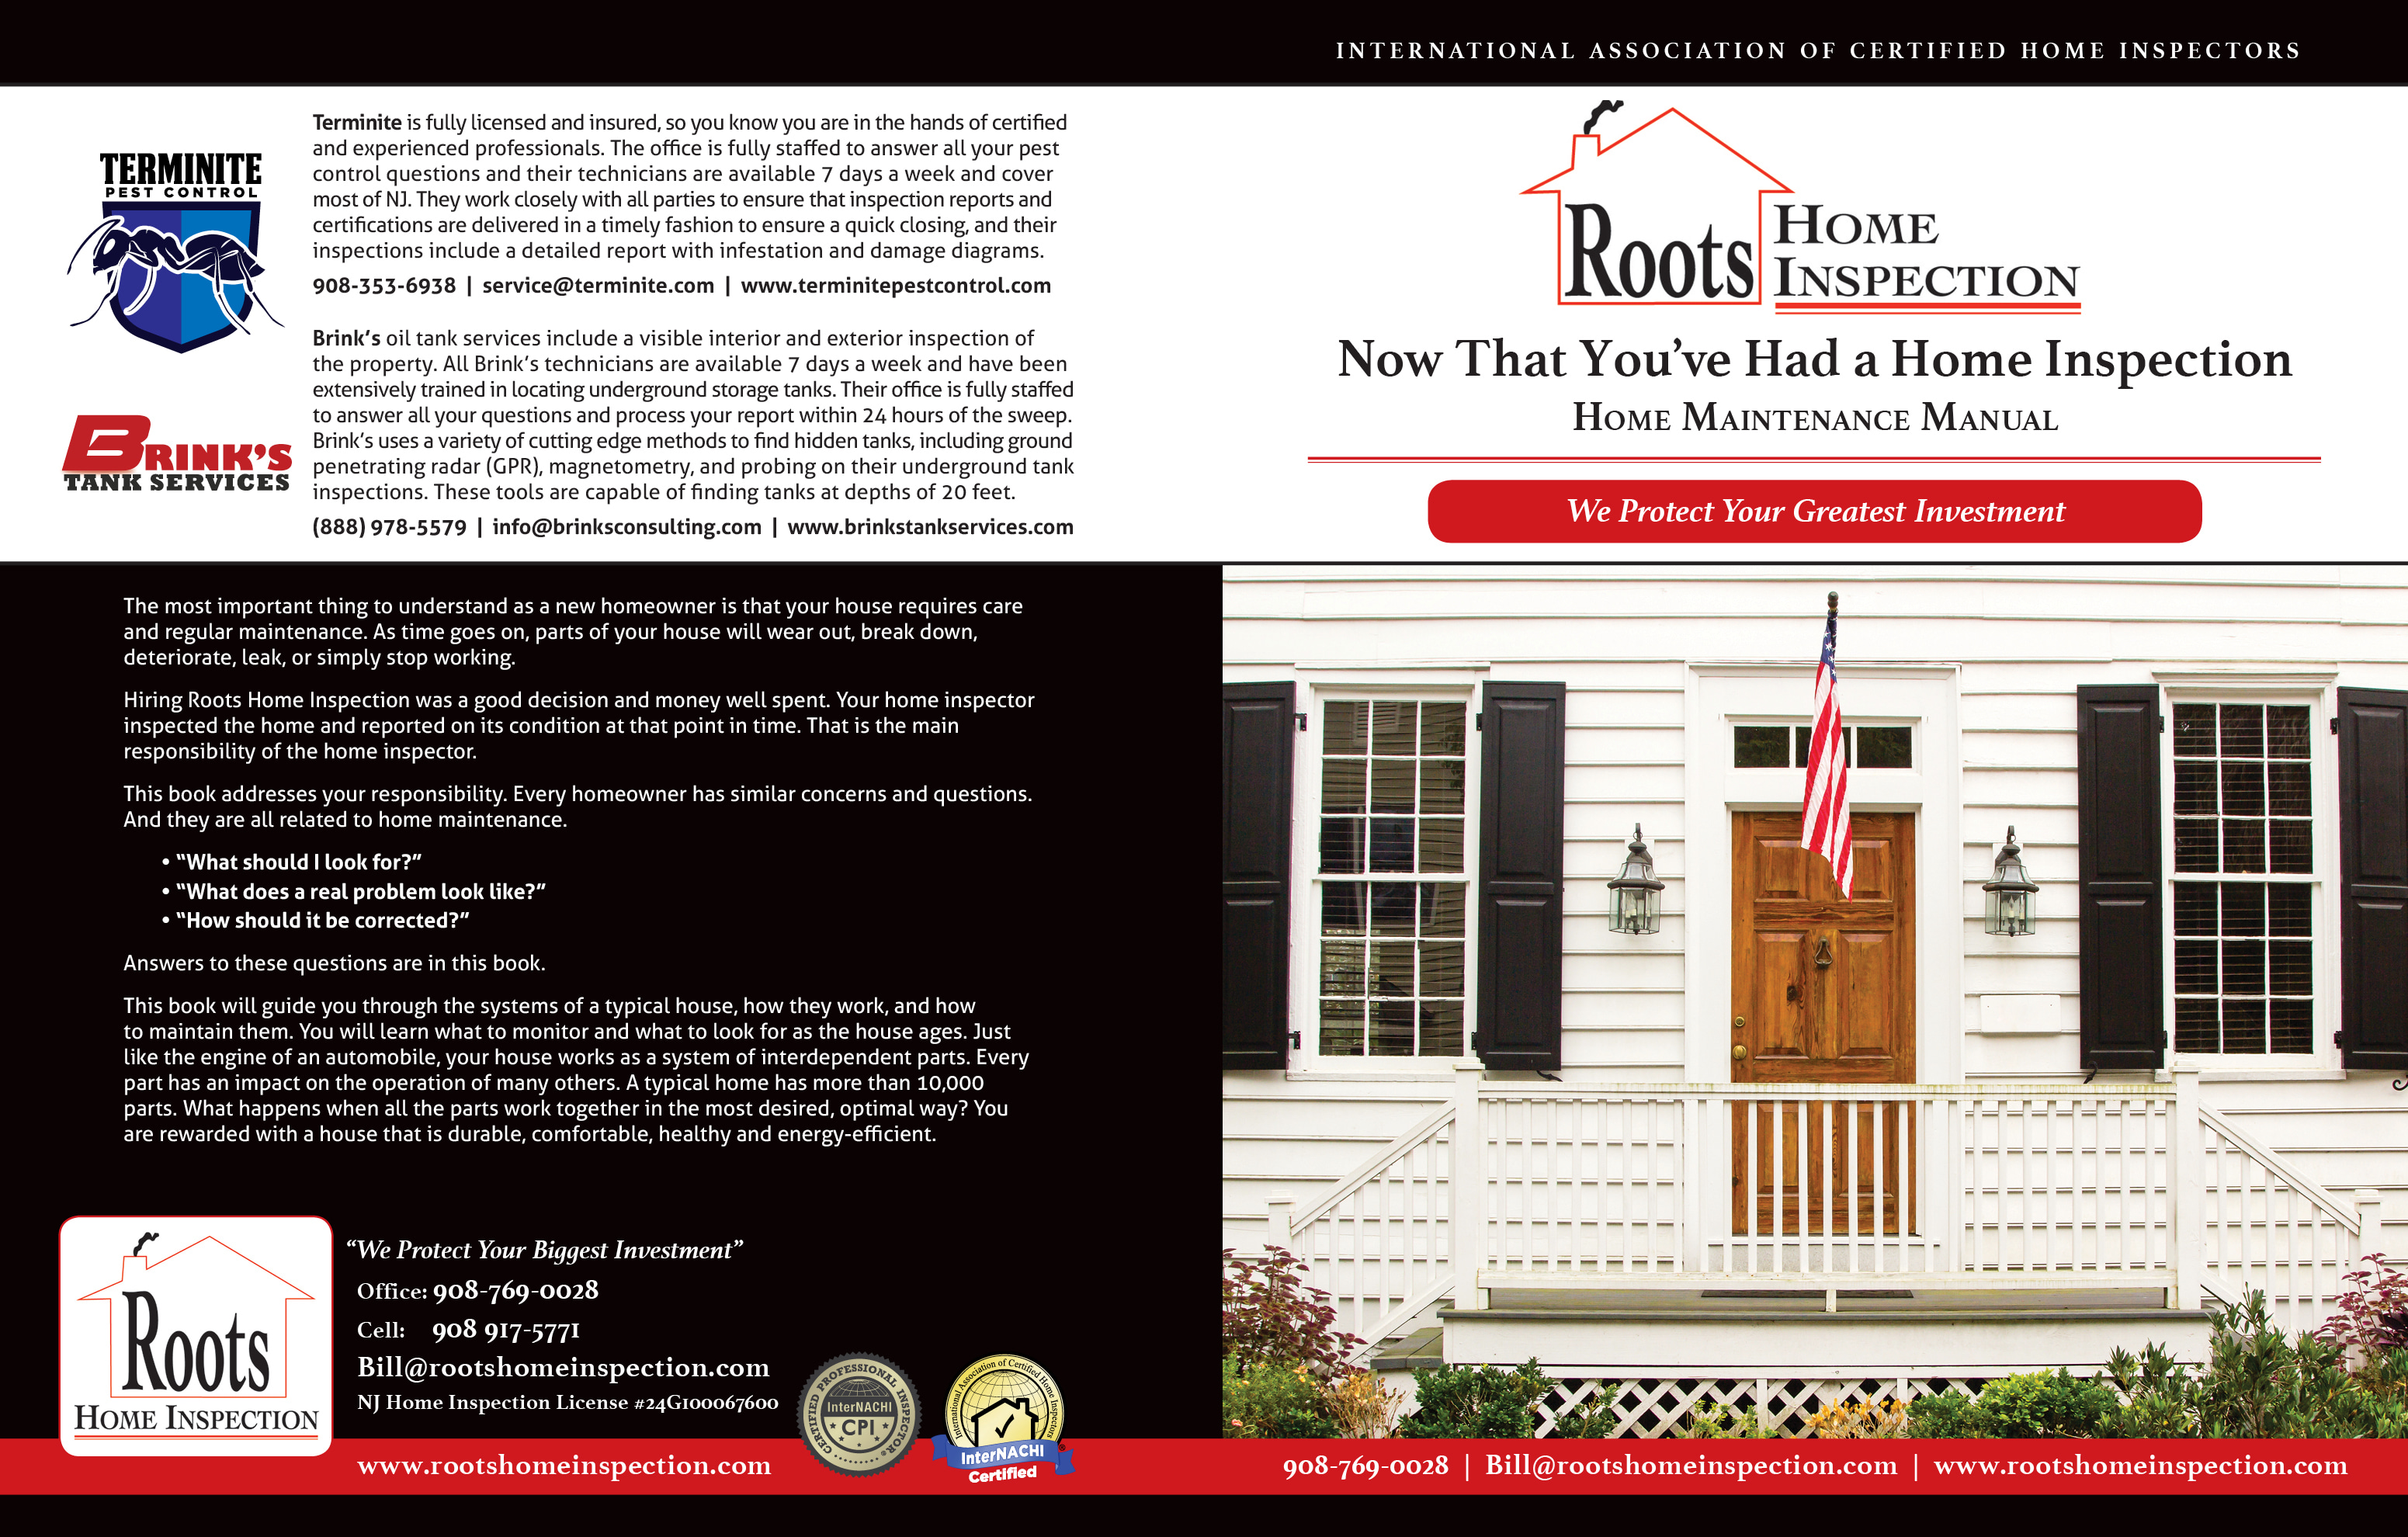 Custom Home Maintenance Book for Roots Home Inspection